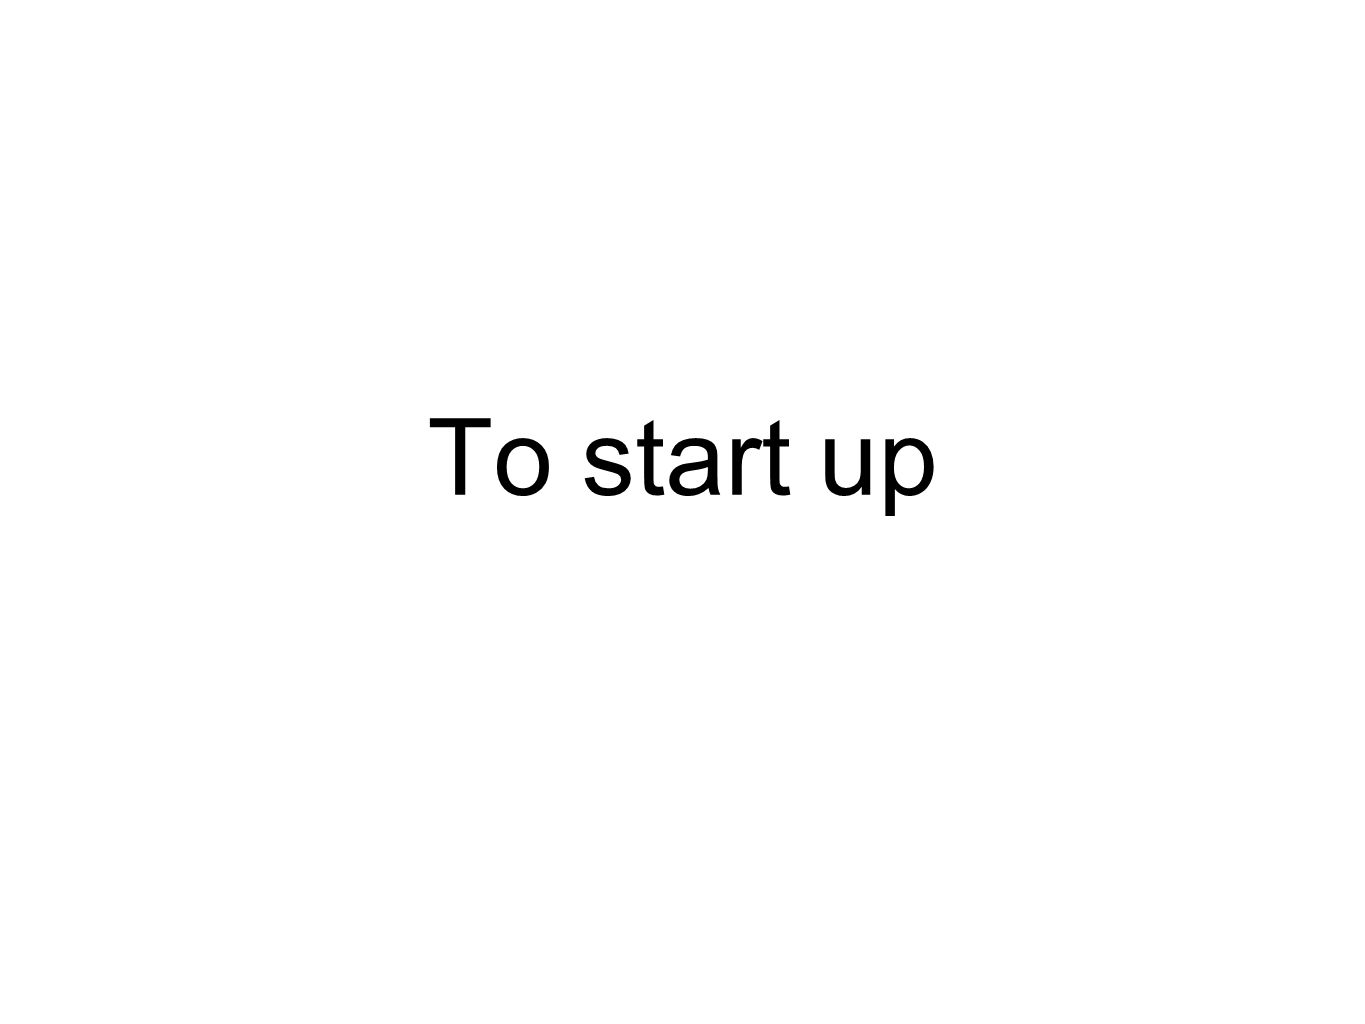 To start up